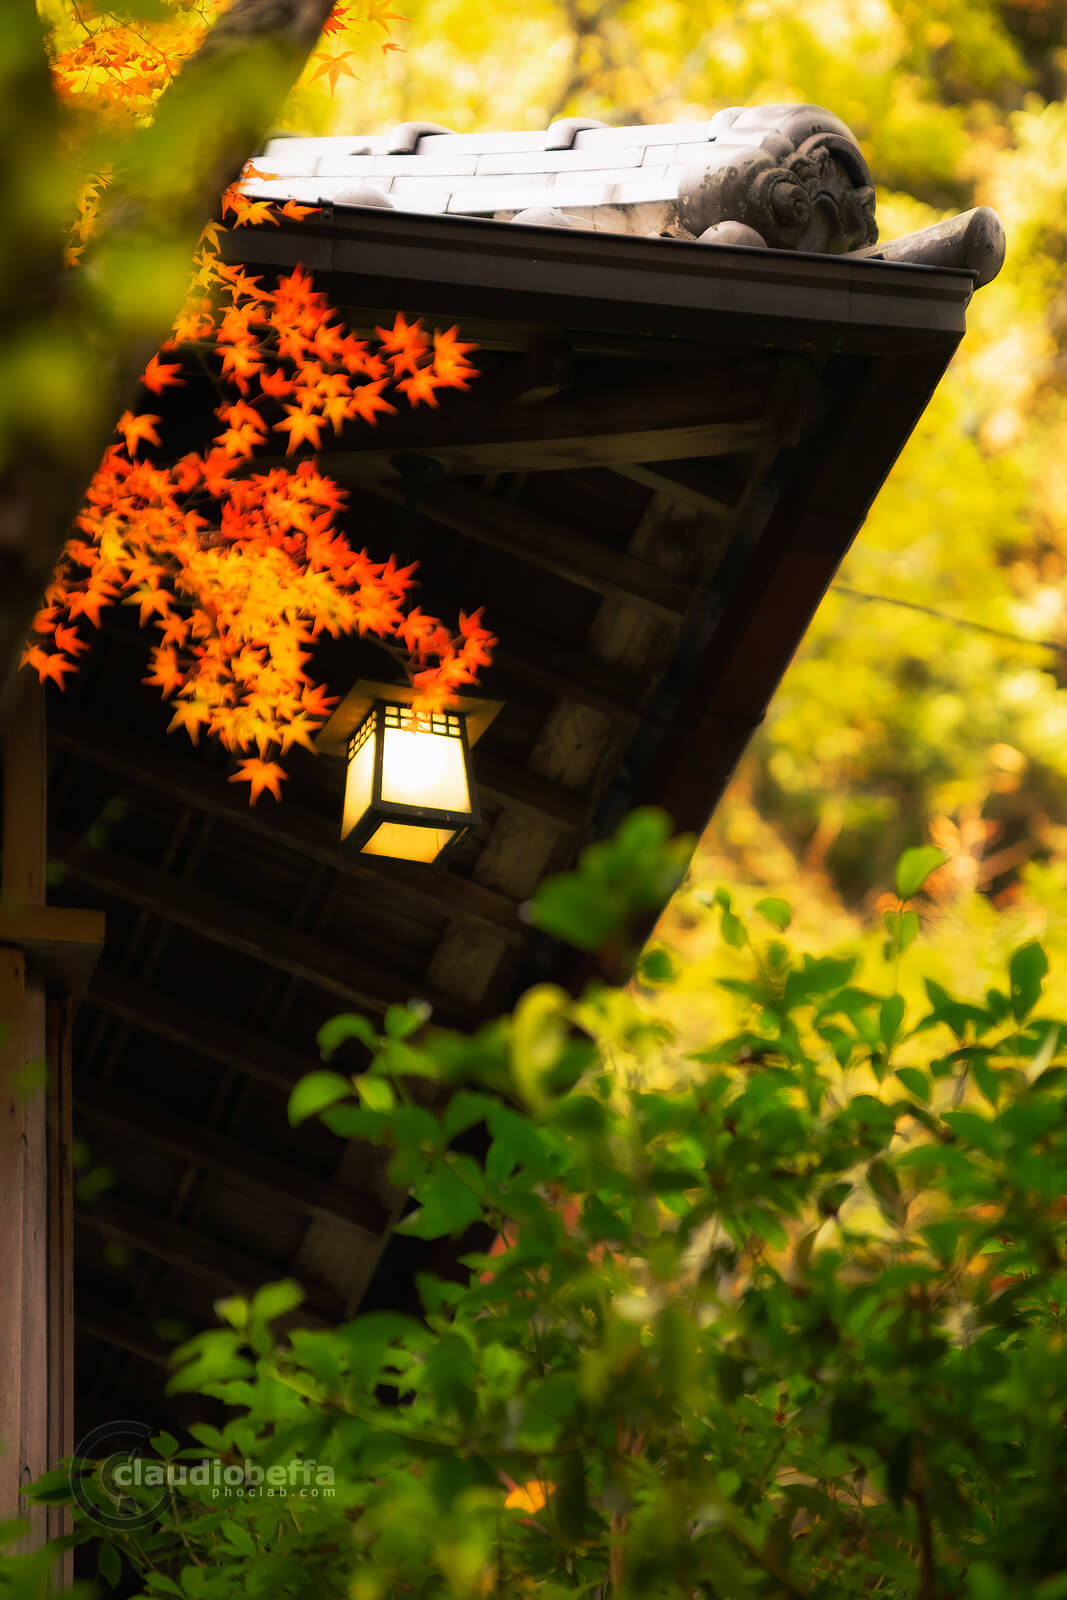 Miyajima, Miyajima autumn, Momijidani, lantern, light the fire, Japan, Hiroshima, autumn, fall, momiji, island, forest, travel, photography, phoclab